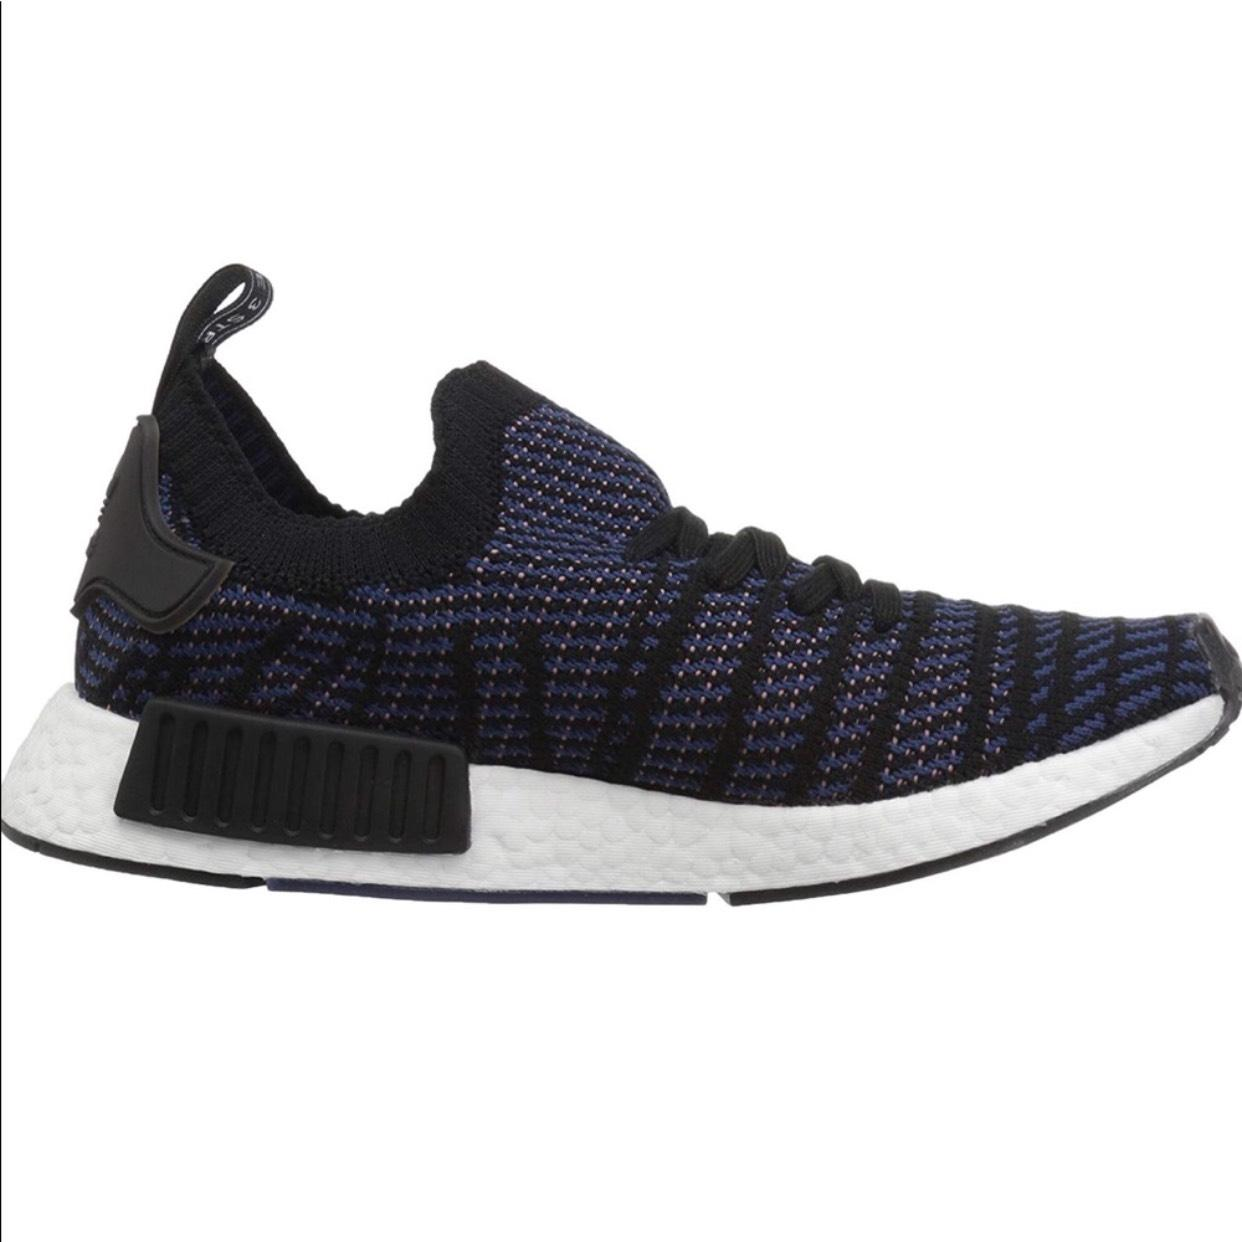 adidas Blue Blue Blue & Pink Nmd_r1 Sneakers Size US 6